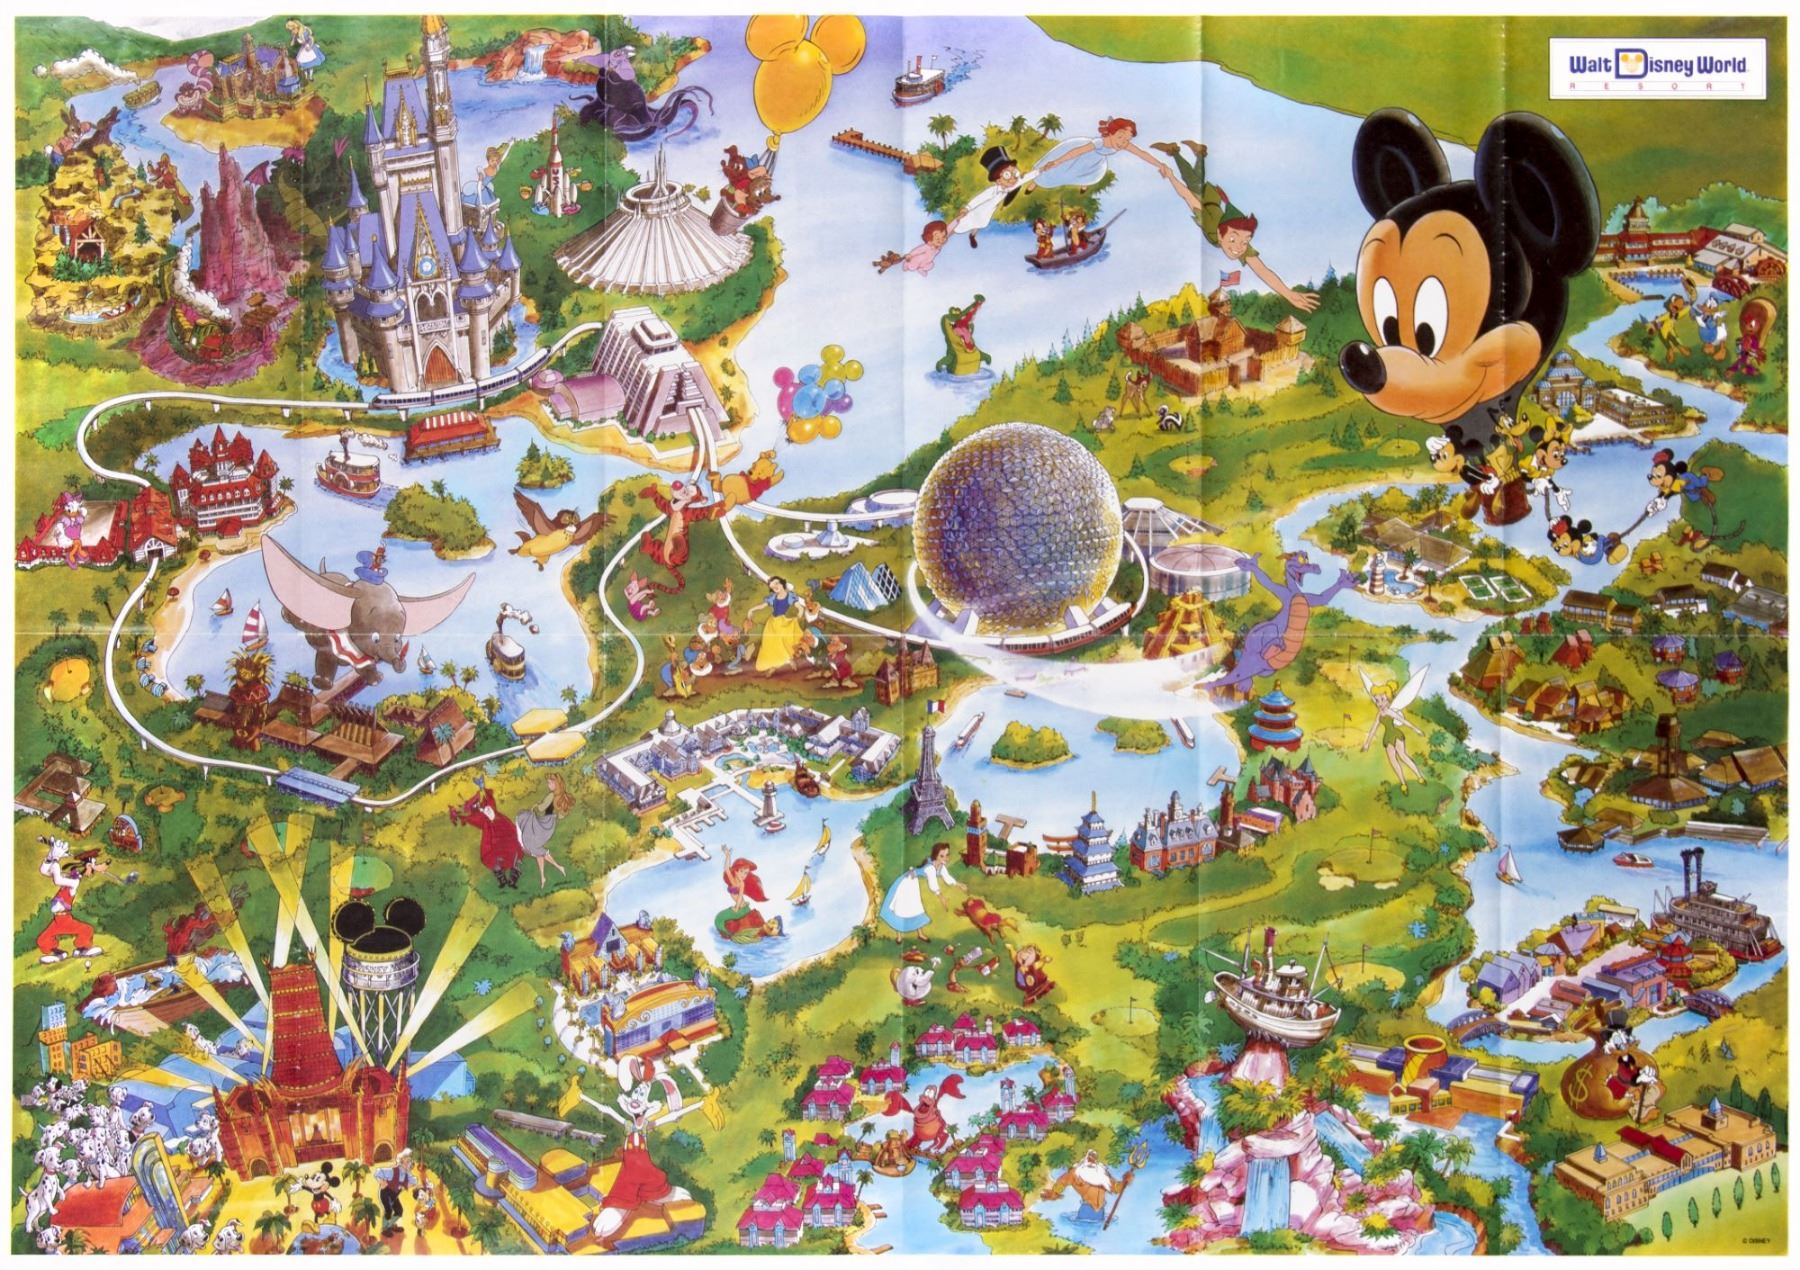 1992 Walt Disney World Resort Map.